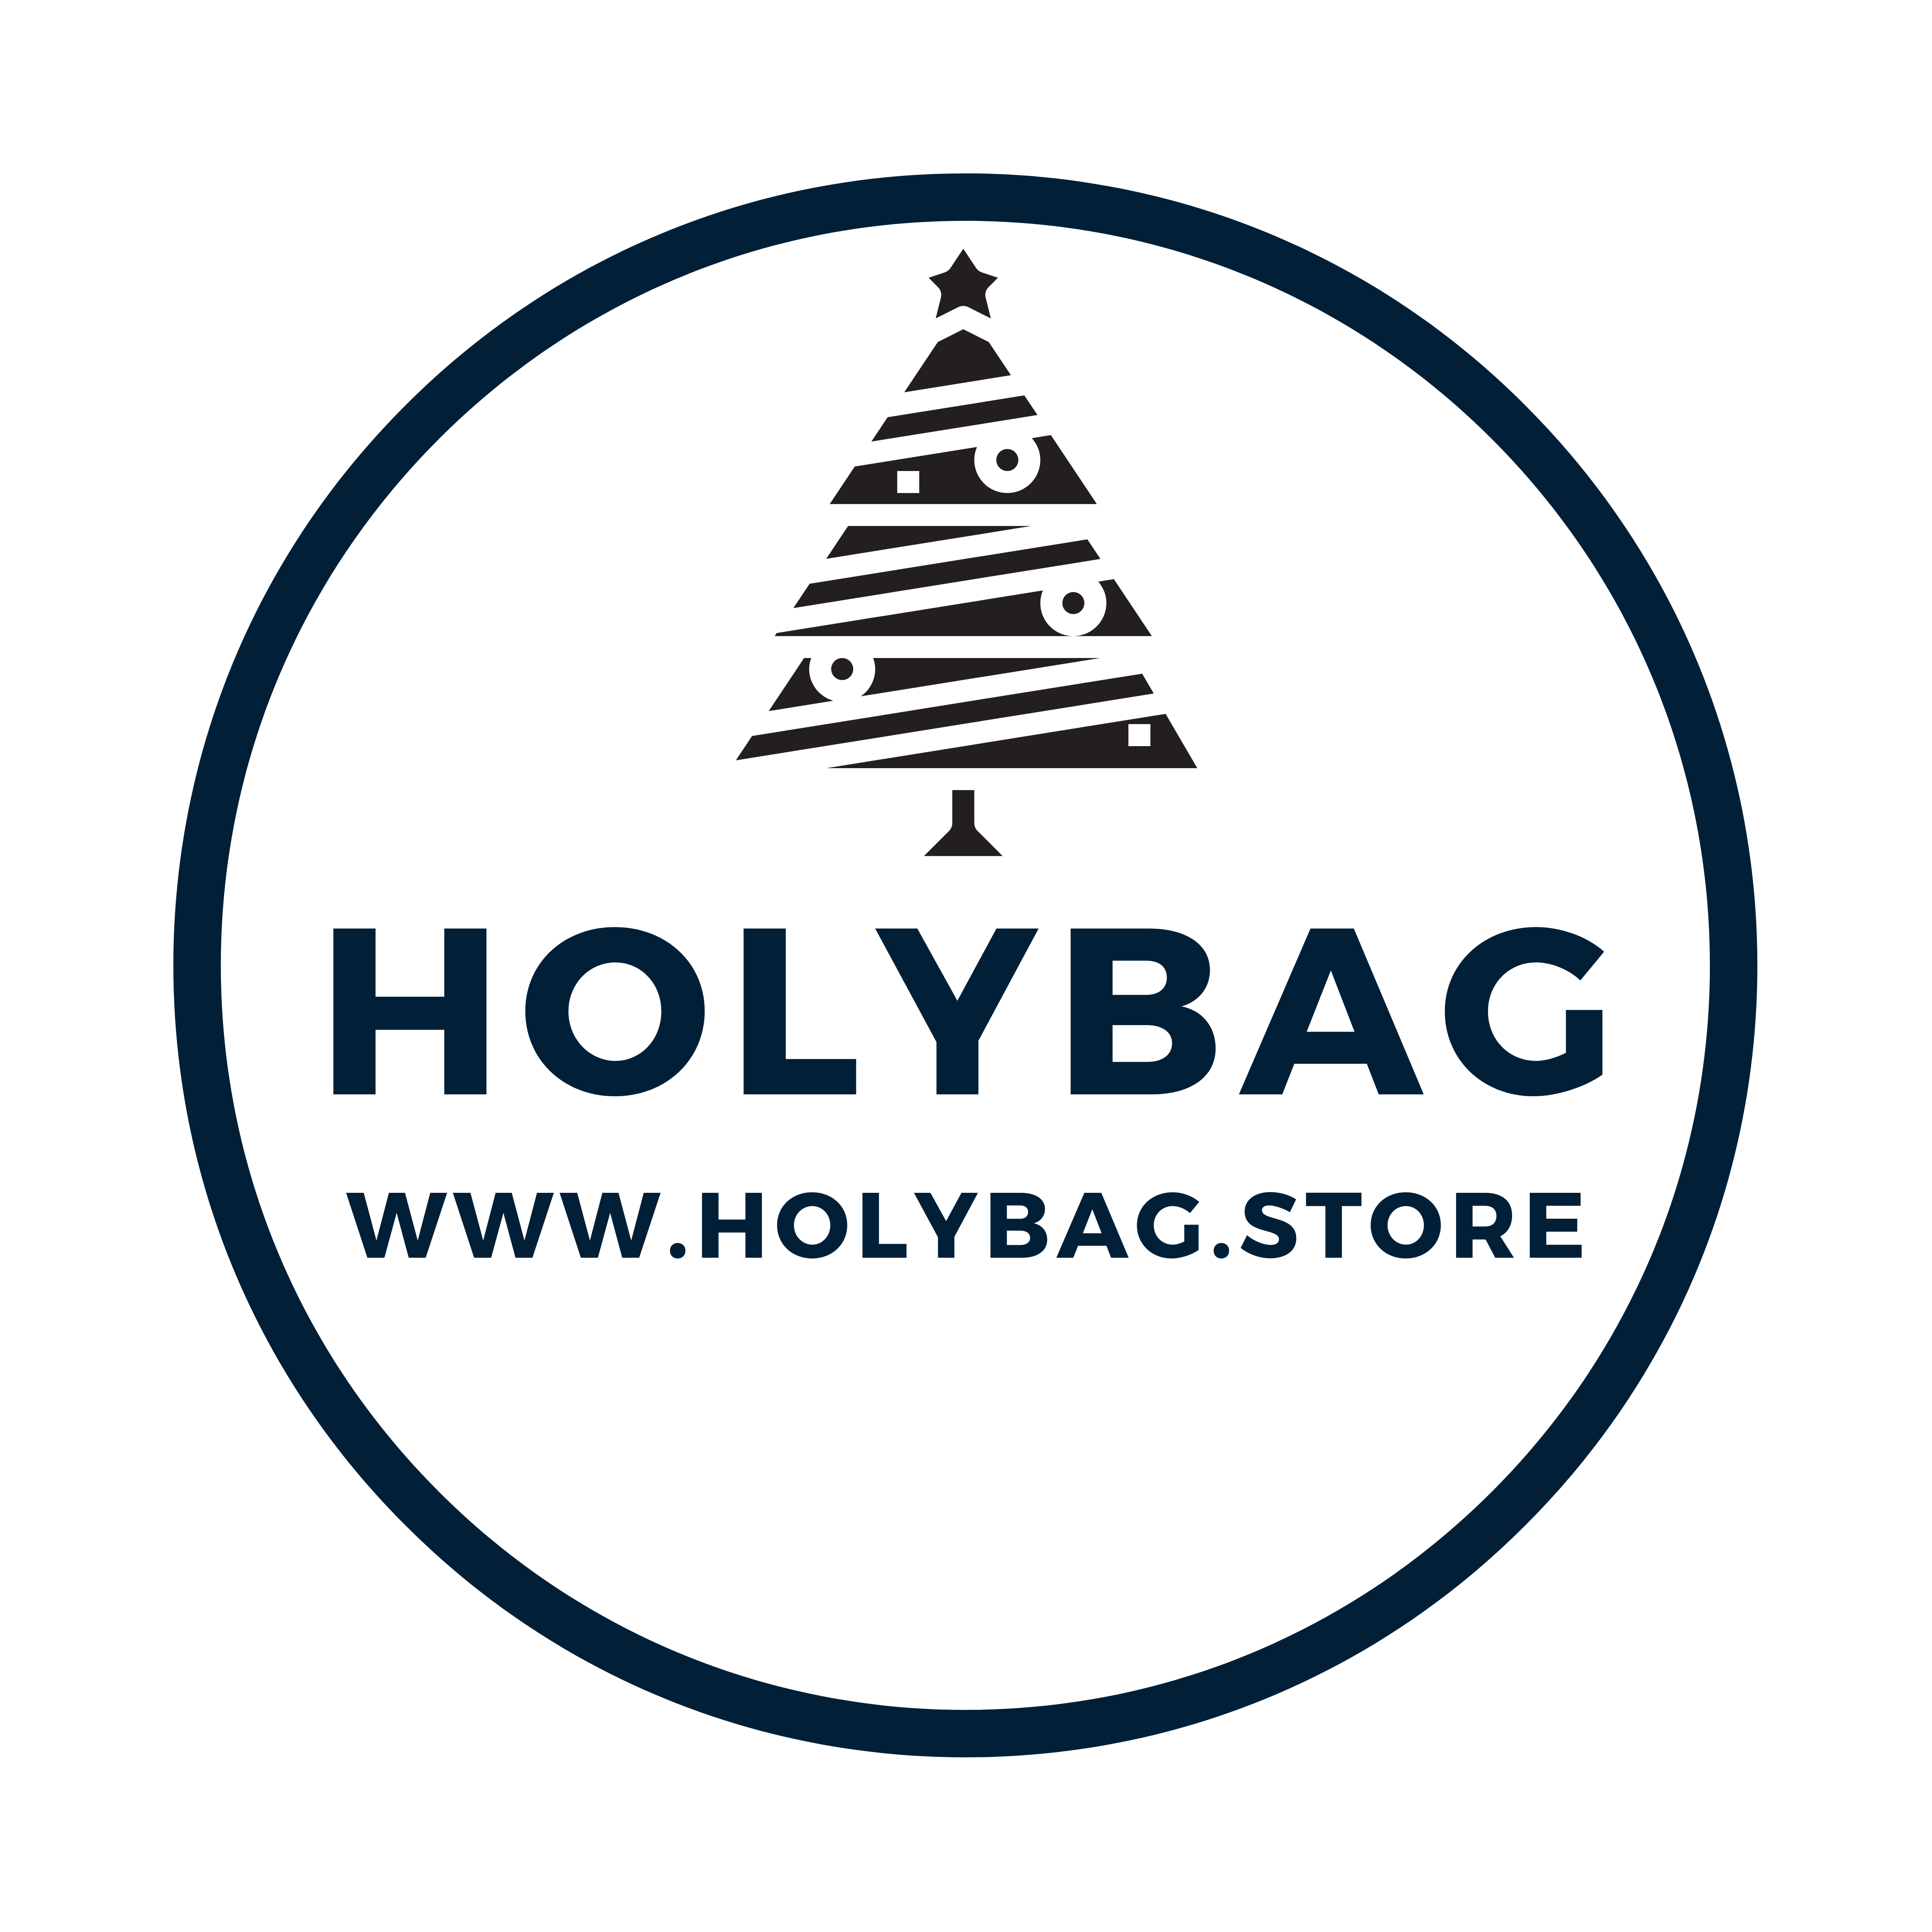 Holybag Store